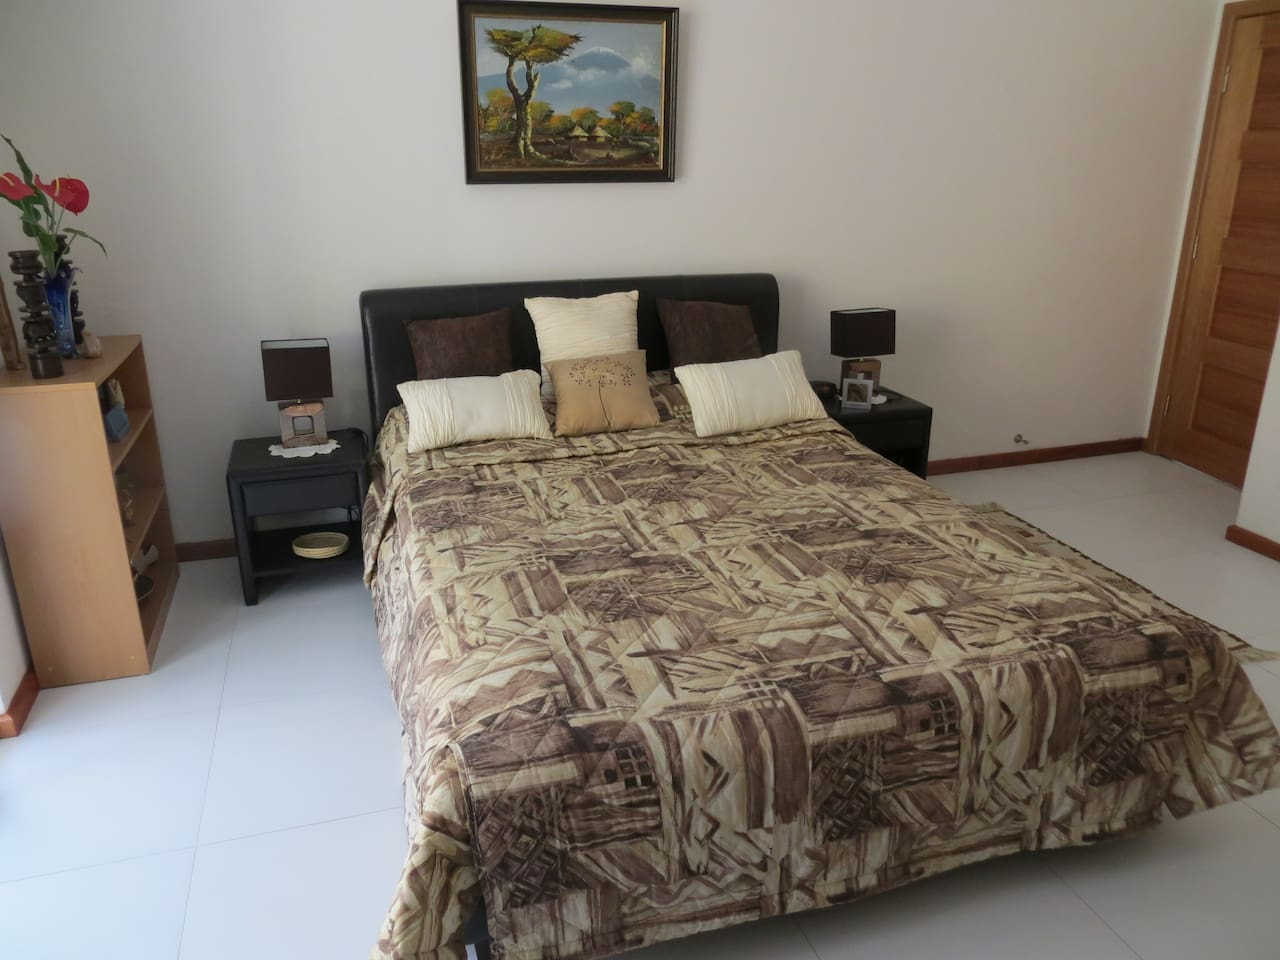 Good sized room with Queen bed